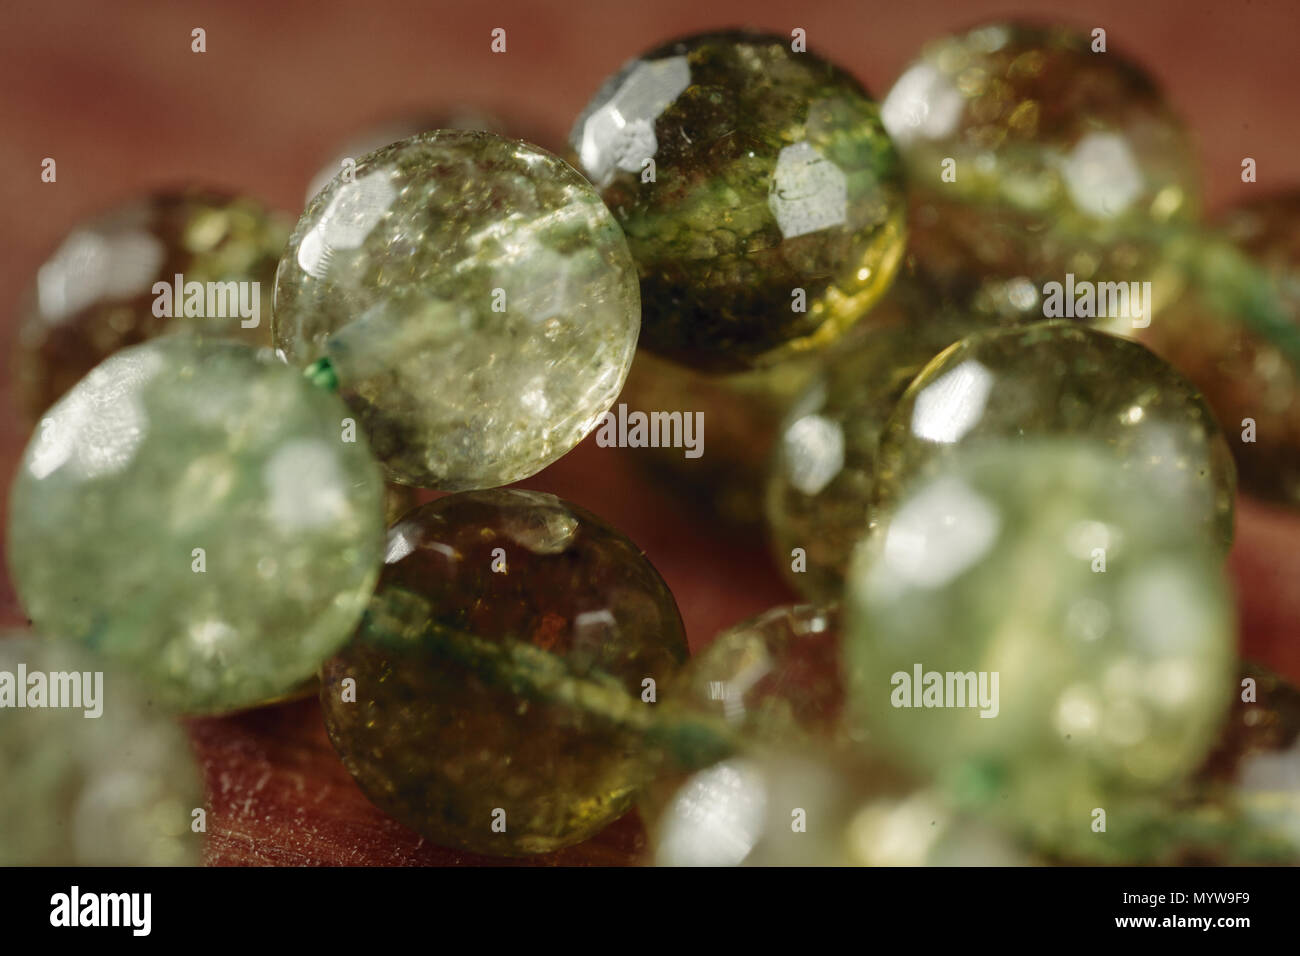 Natural green jade nephrite mineral stones beads. Stock Photo